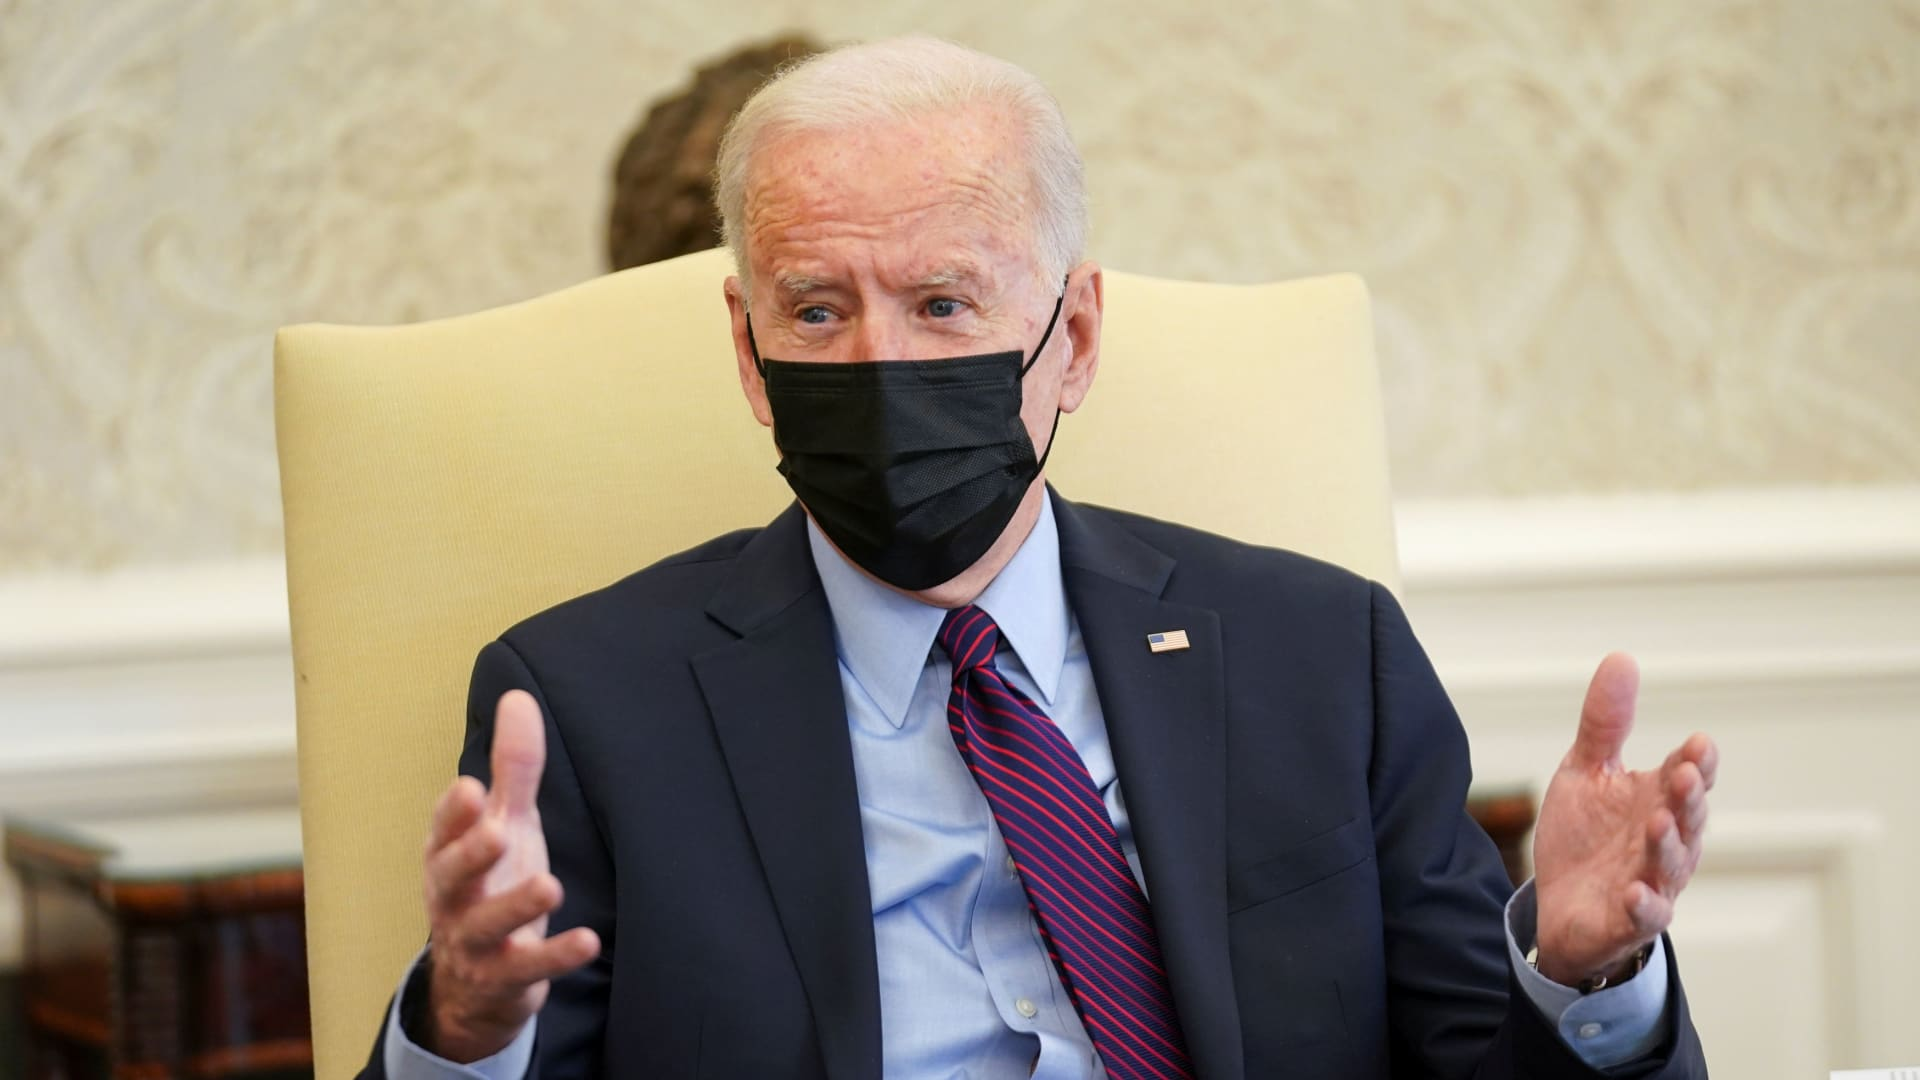 President Joe Biden speaks with House Democratic leaders and chairs of House committees working on coronavirus disease (COVID-19) aid legislation during a meeting in the Oval Office at the White House in Washington, U.S., February 5, 2021.